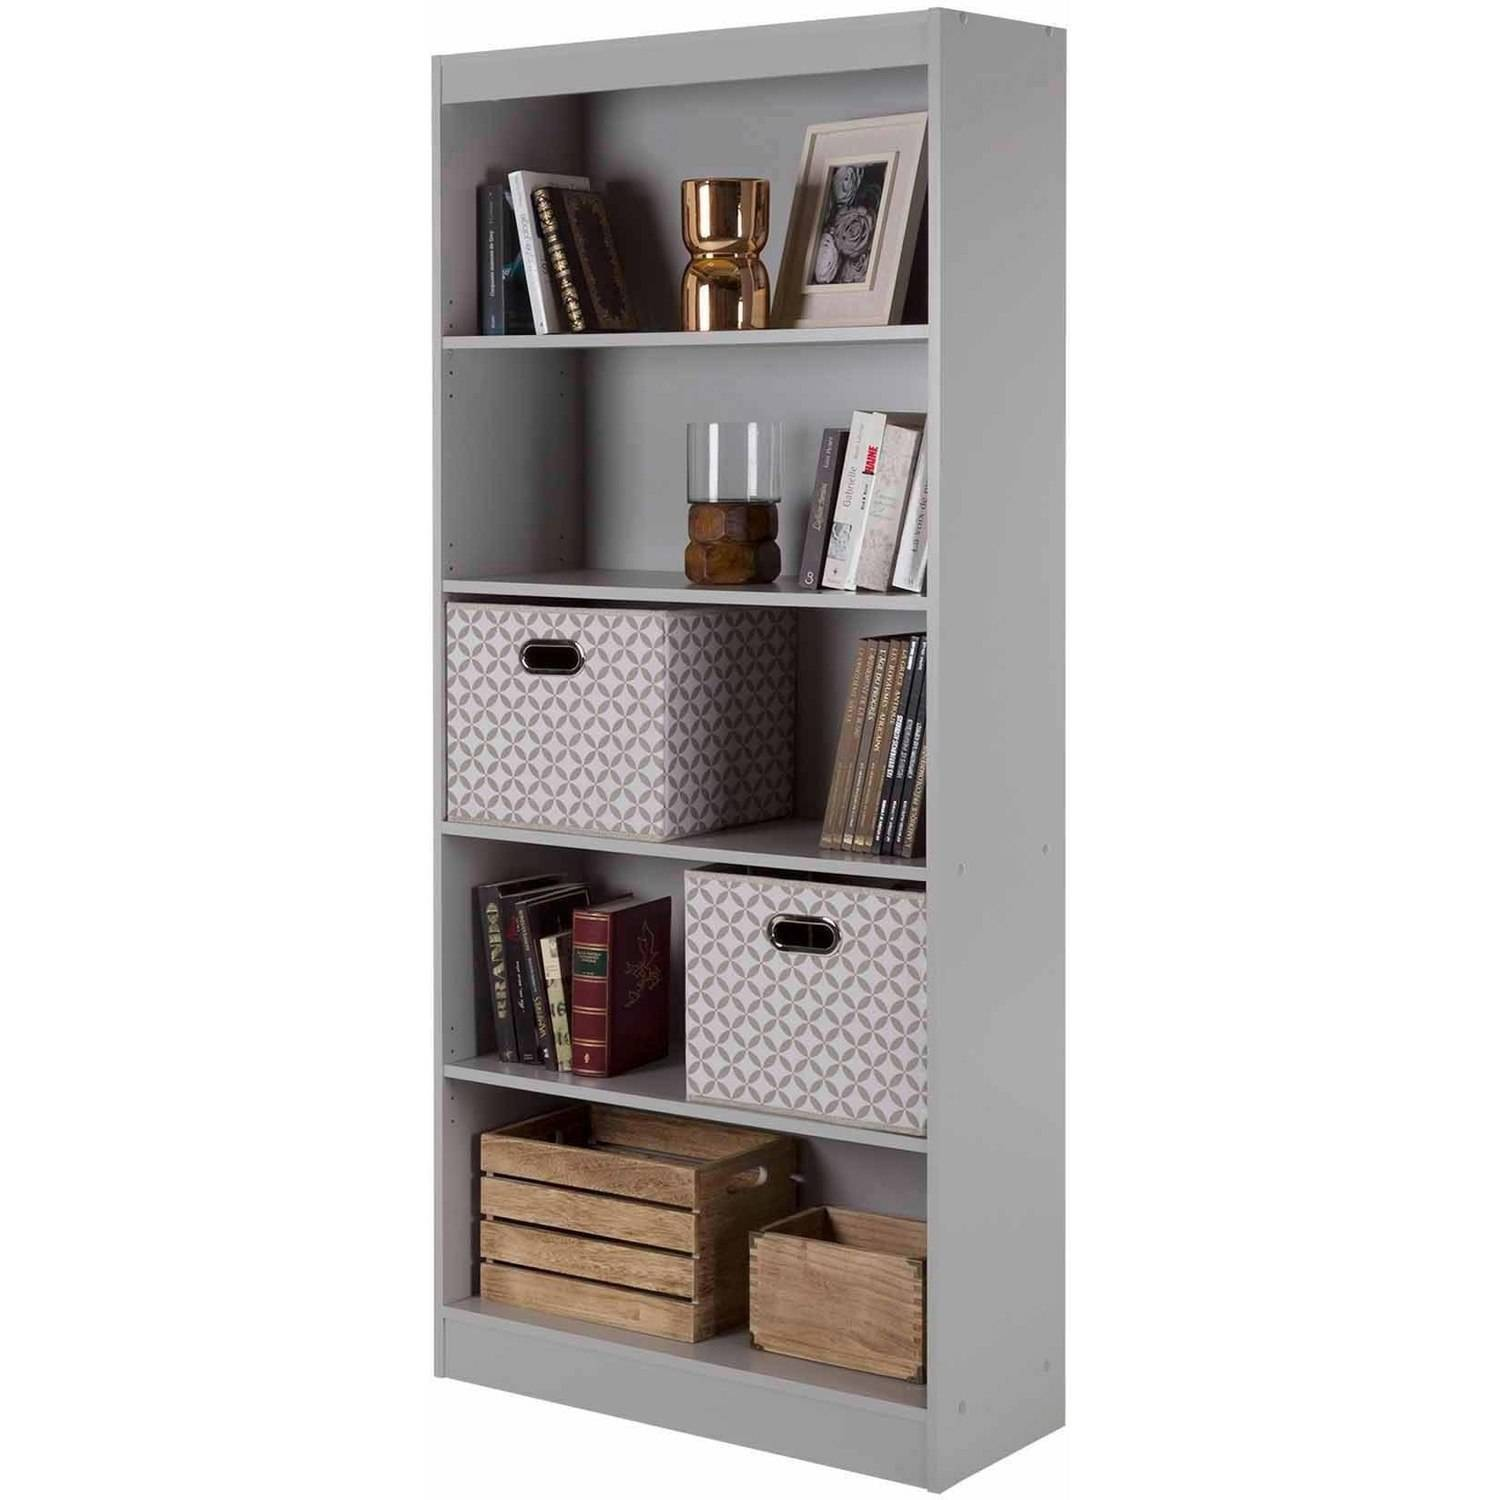 South Shore Smart Basics 5 Shelf Bookcase Value Bundle, Multiple Finishes  (Mix And Match)   Walmart.com